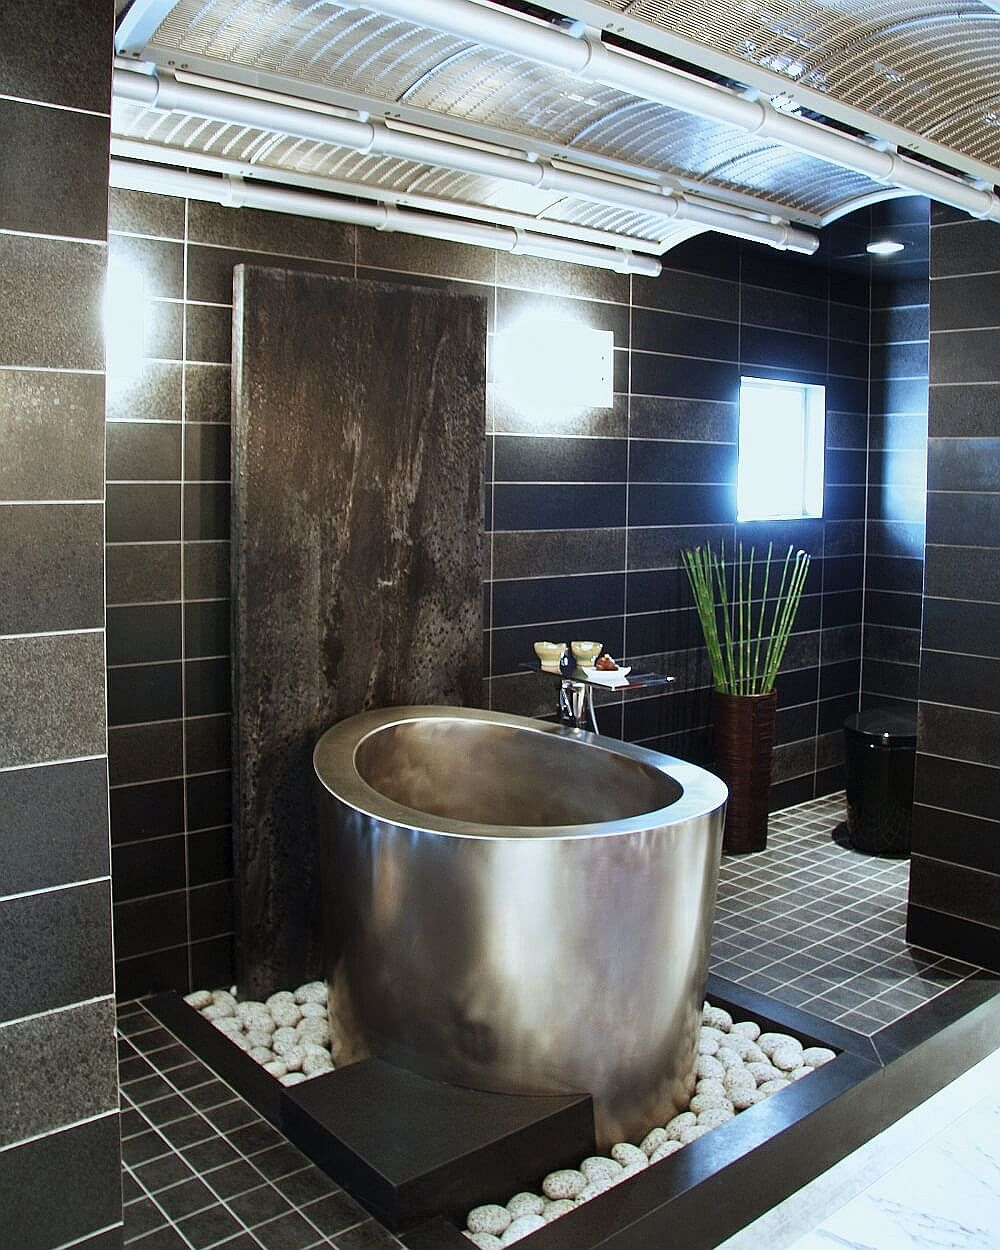 Japanese soaking tub in stainless steel is just perfect for the modern, spa-styled bathroom